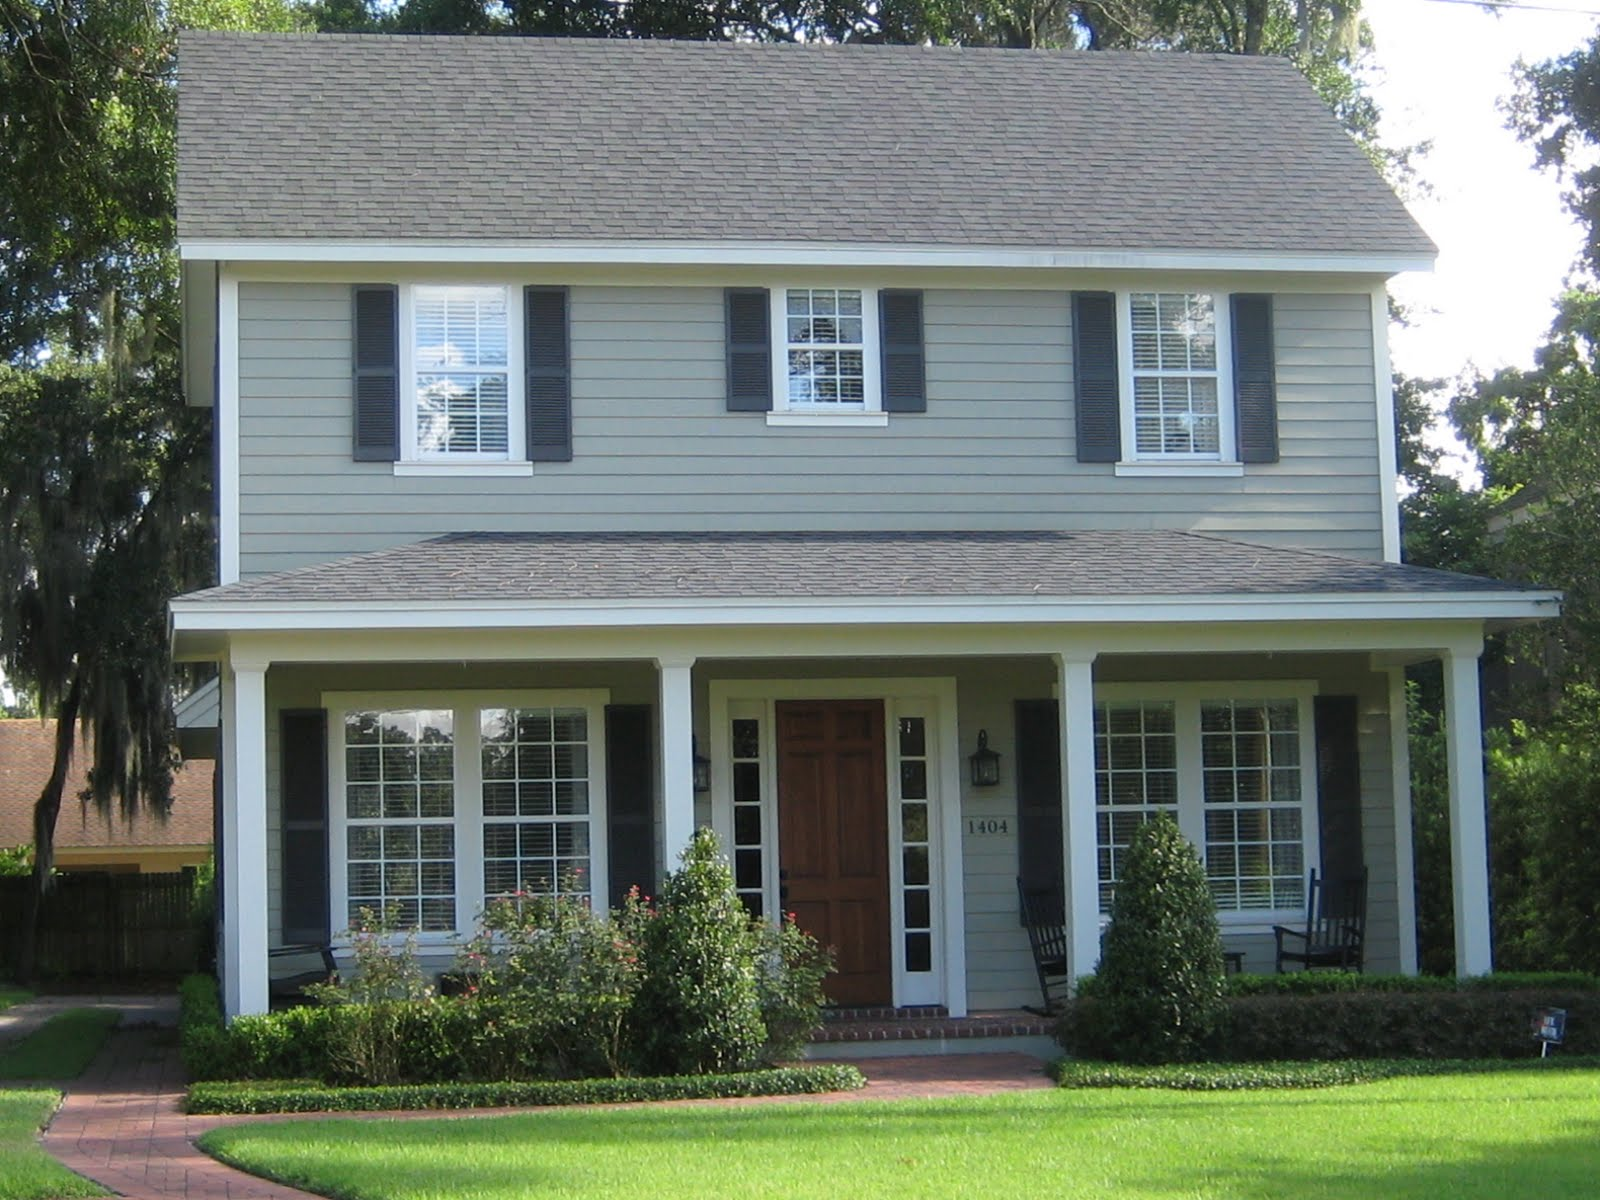 Green street exterior house color contenders - Home exterior paint ...